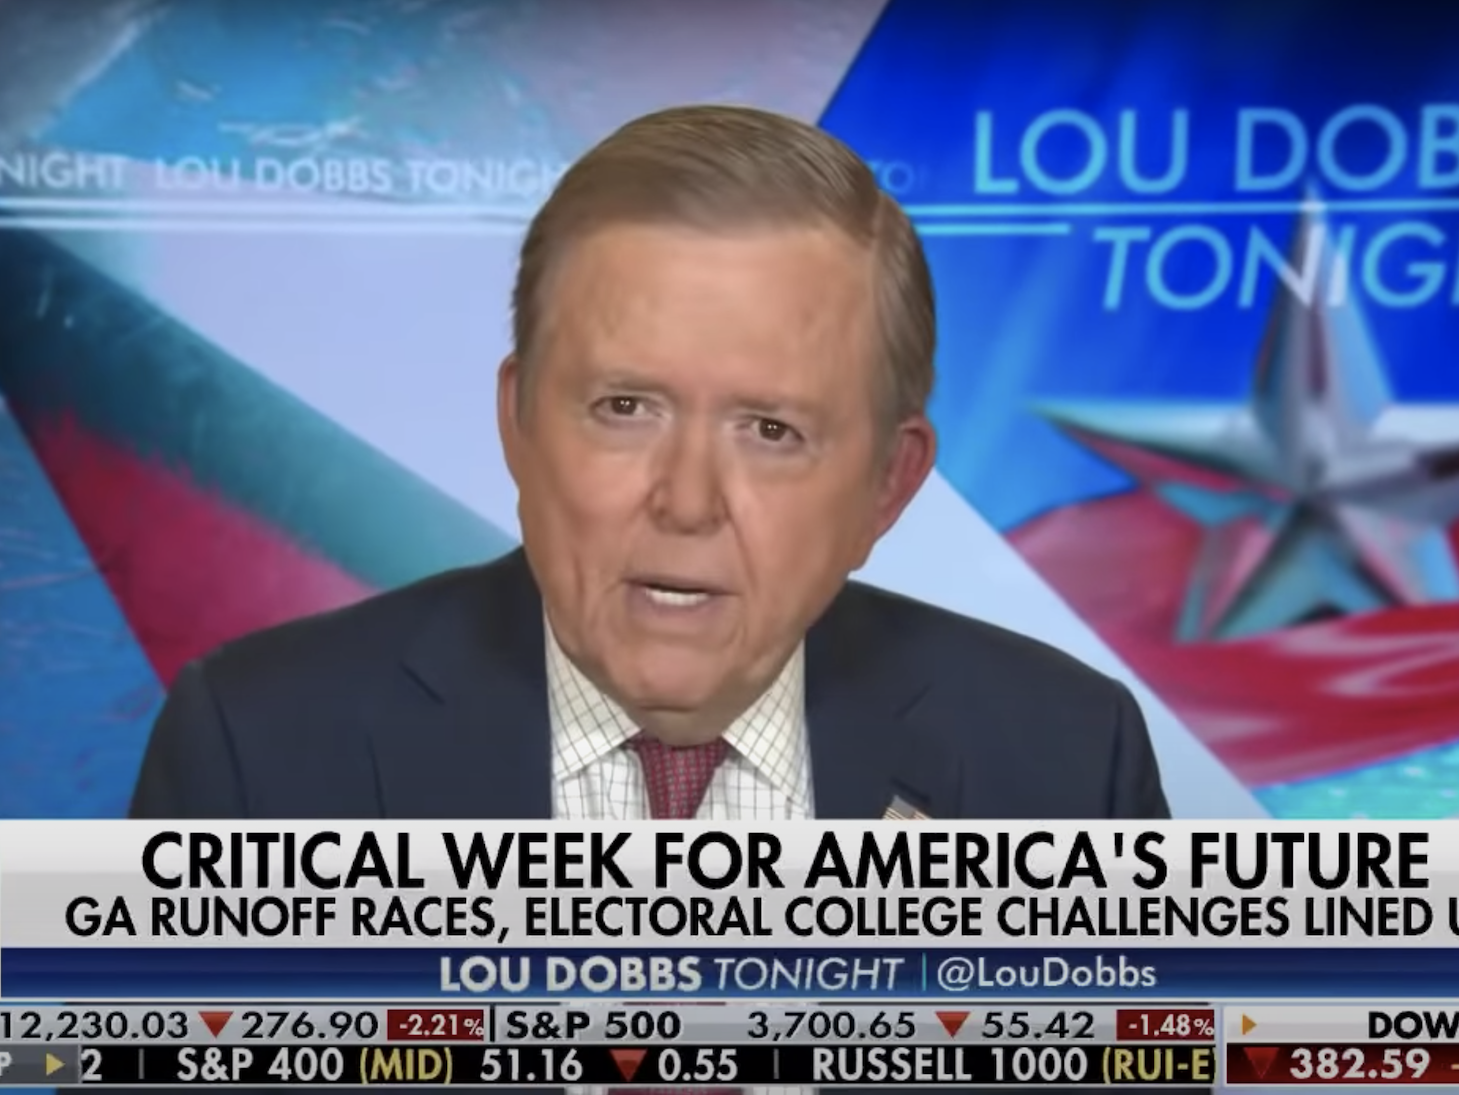 Fox host Lou Dobbs complained that he can't get 'accurate proof' of voter fraud, but saved pushing the discredited theory anyway